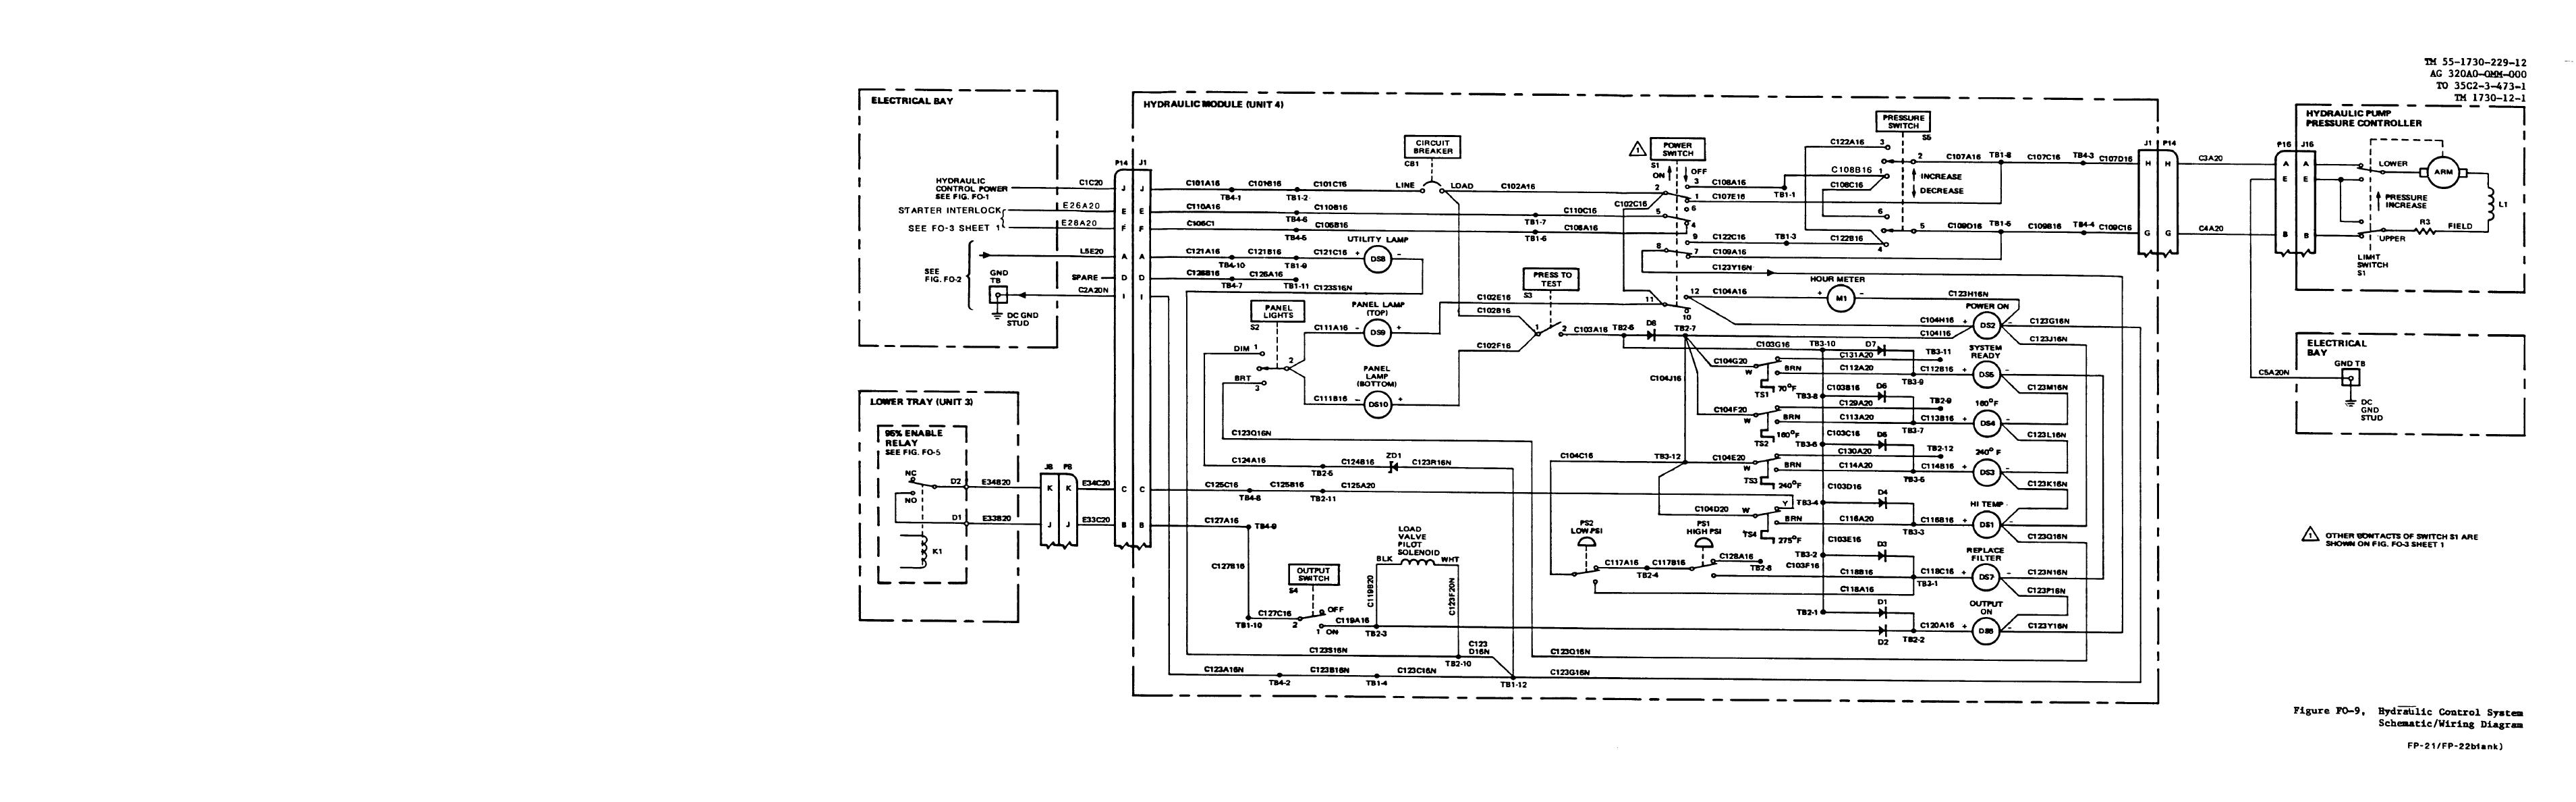 Figure Fo Wiring Diagram